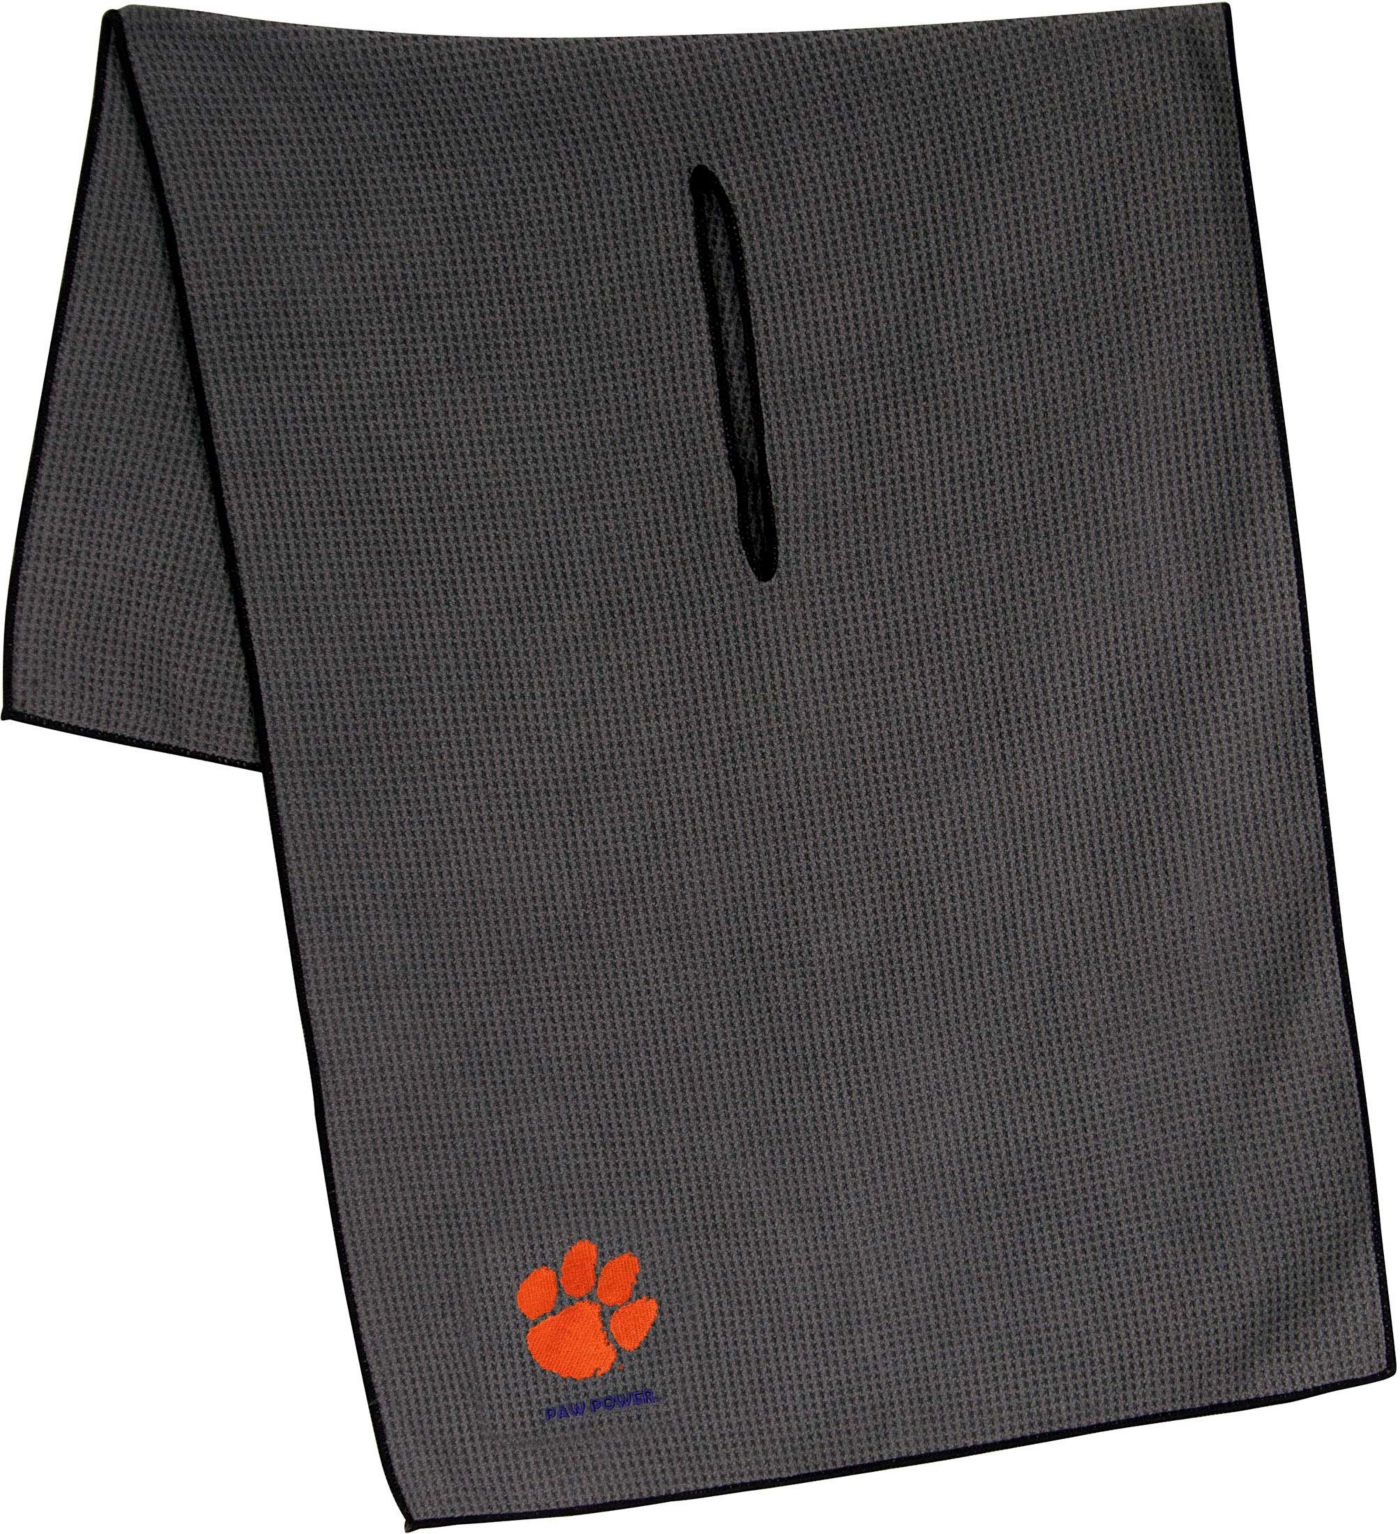 "Team Effort Clemson Tigers 19"" x 41"" Microfiber Golf Towel"